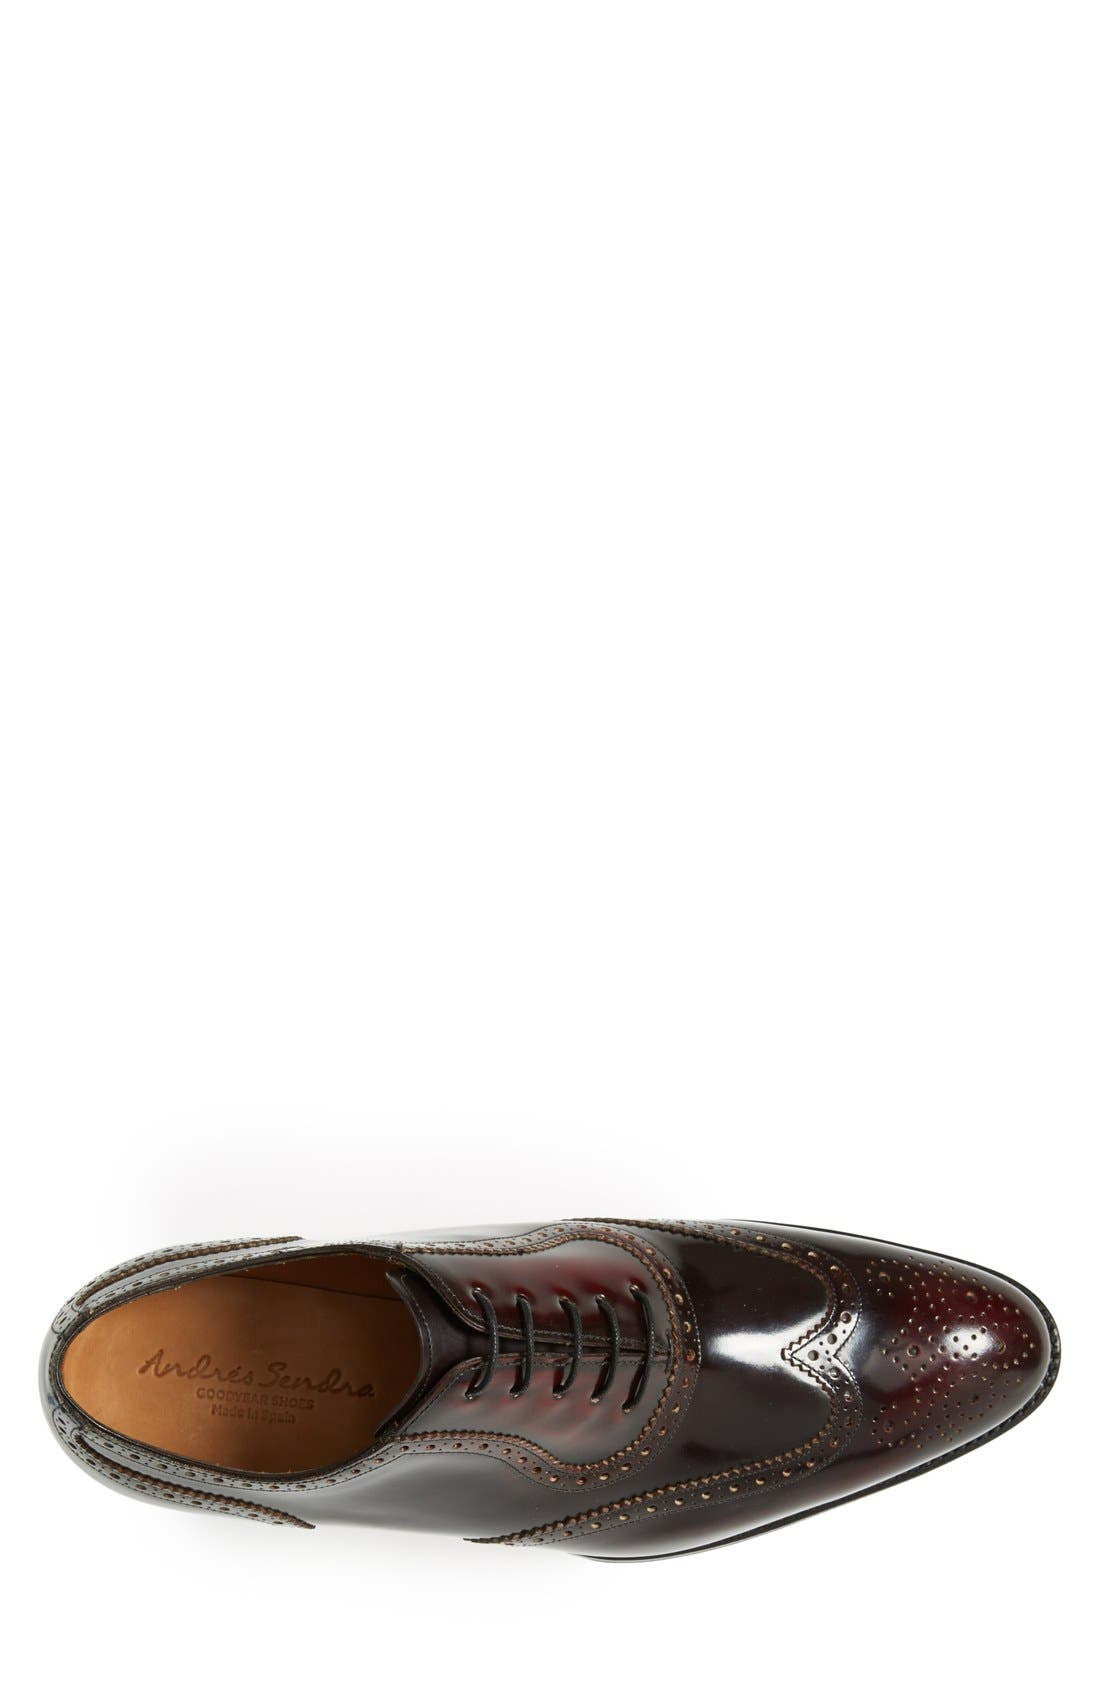 'Wexford' Wingtip,                             Alternate thumbnail 3, color,                             BORDEAUX